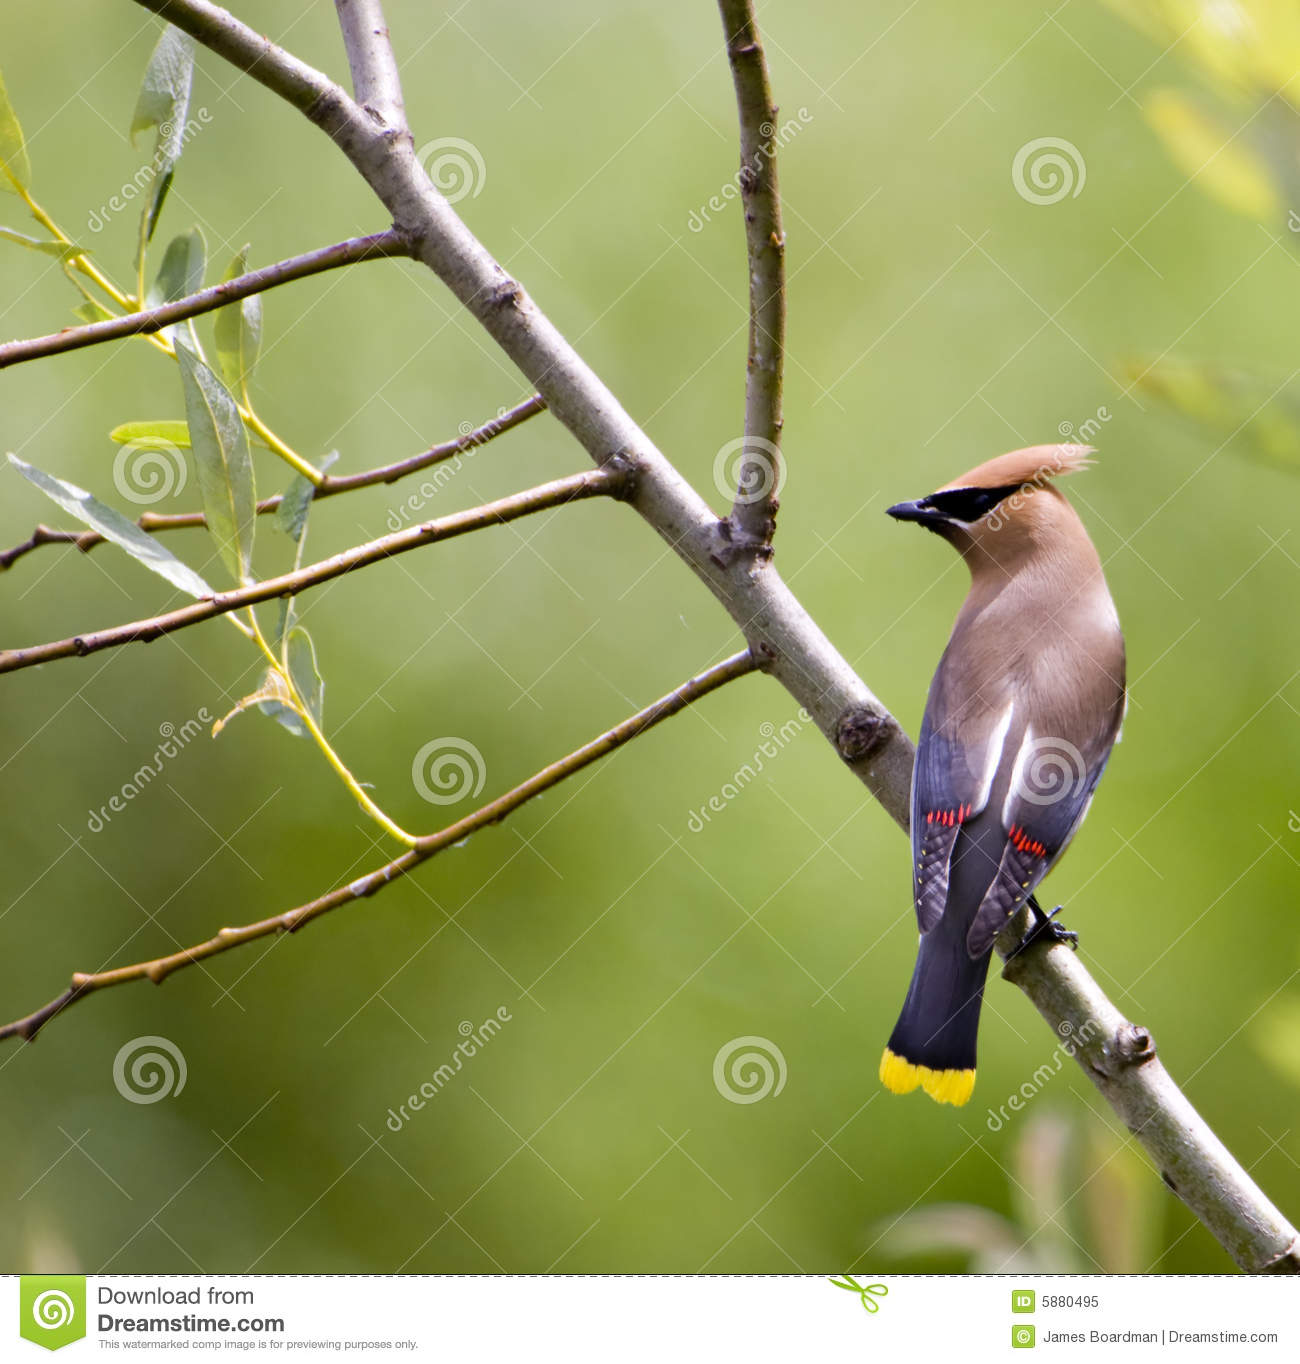 Waxwing perched